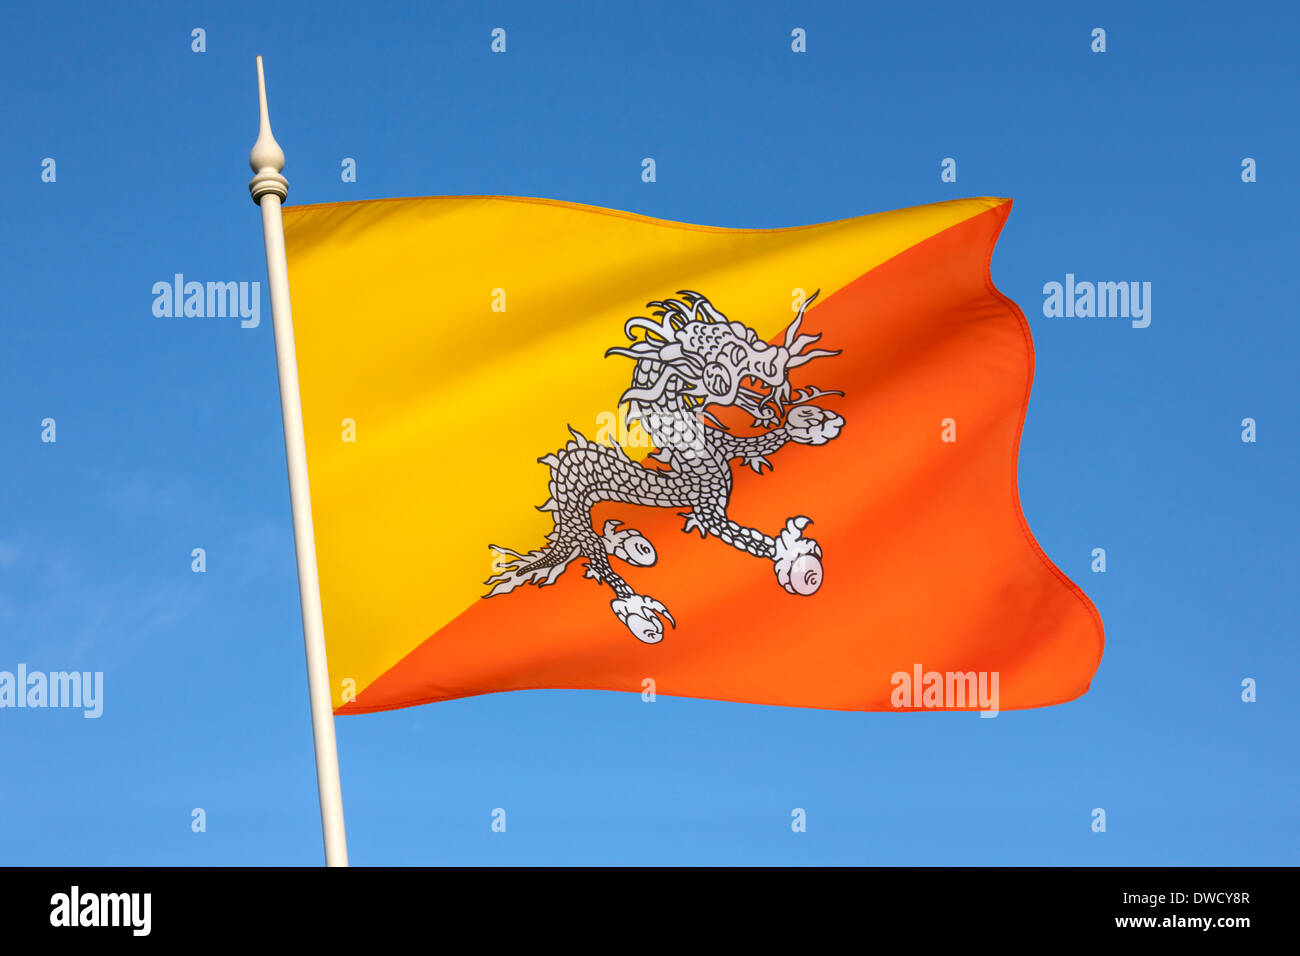 The national flag of The Kingdom of Bhutan - Stock Image